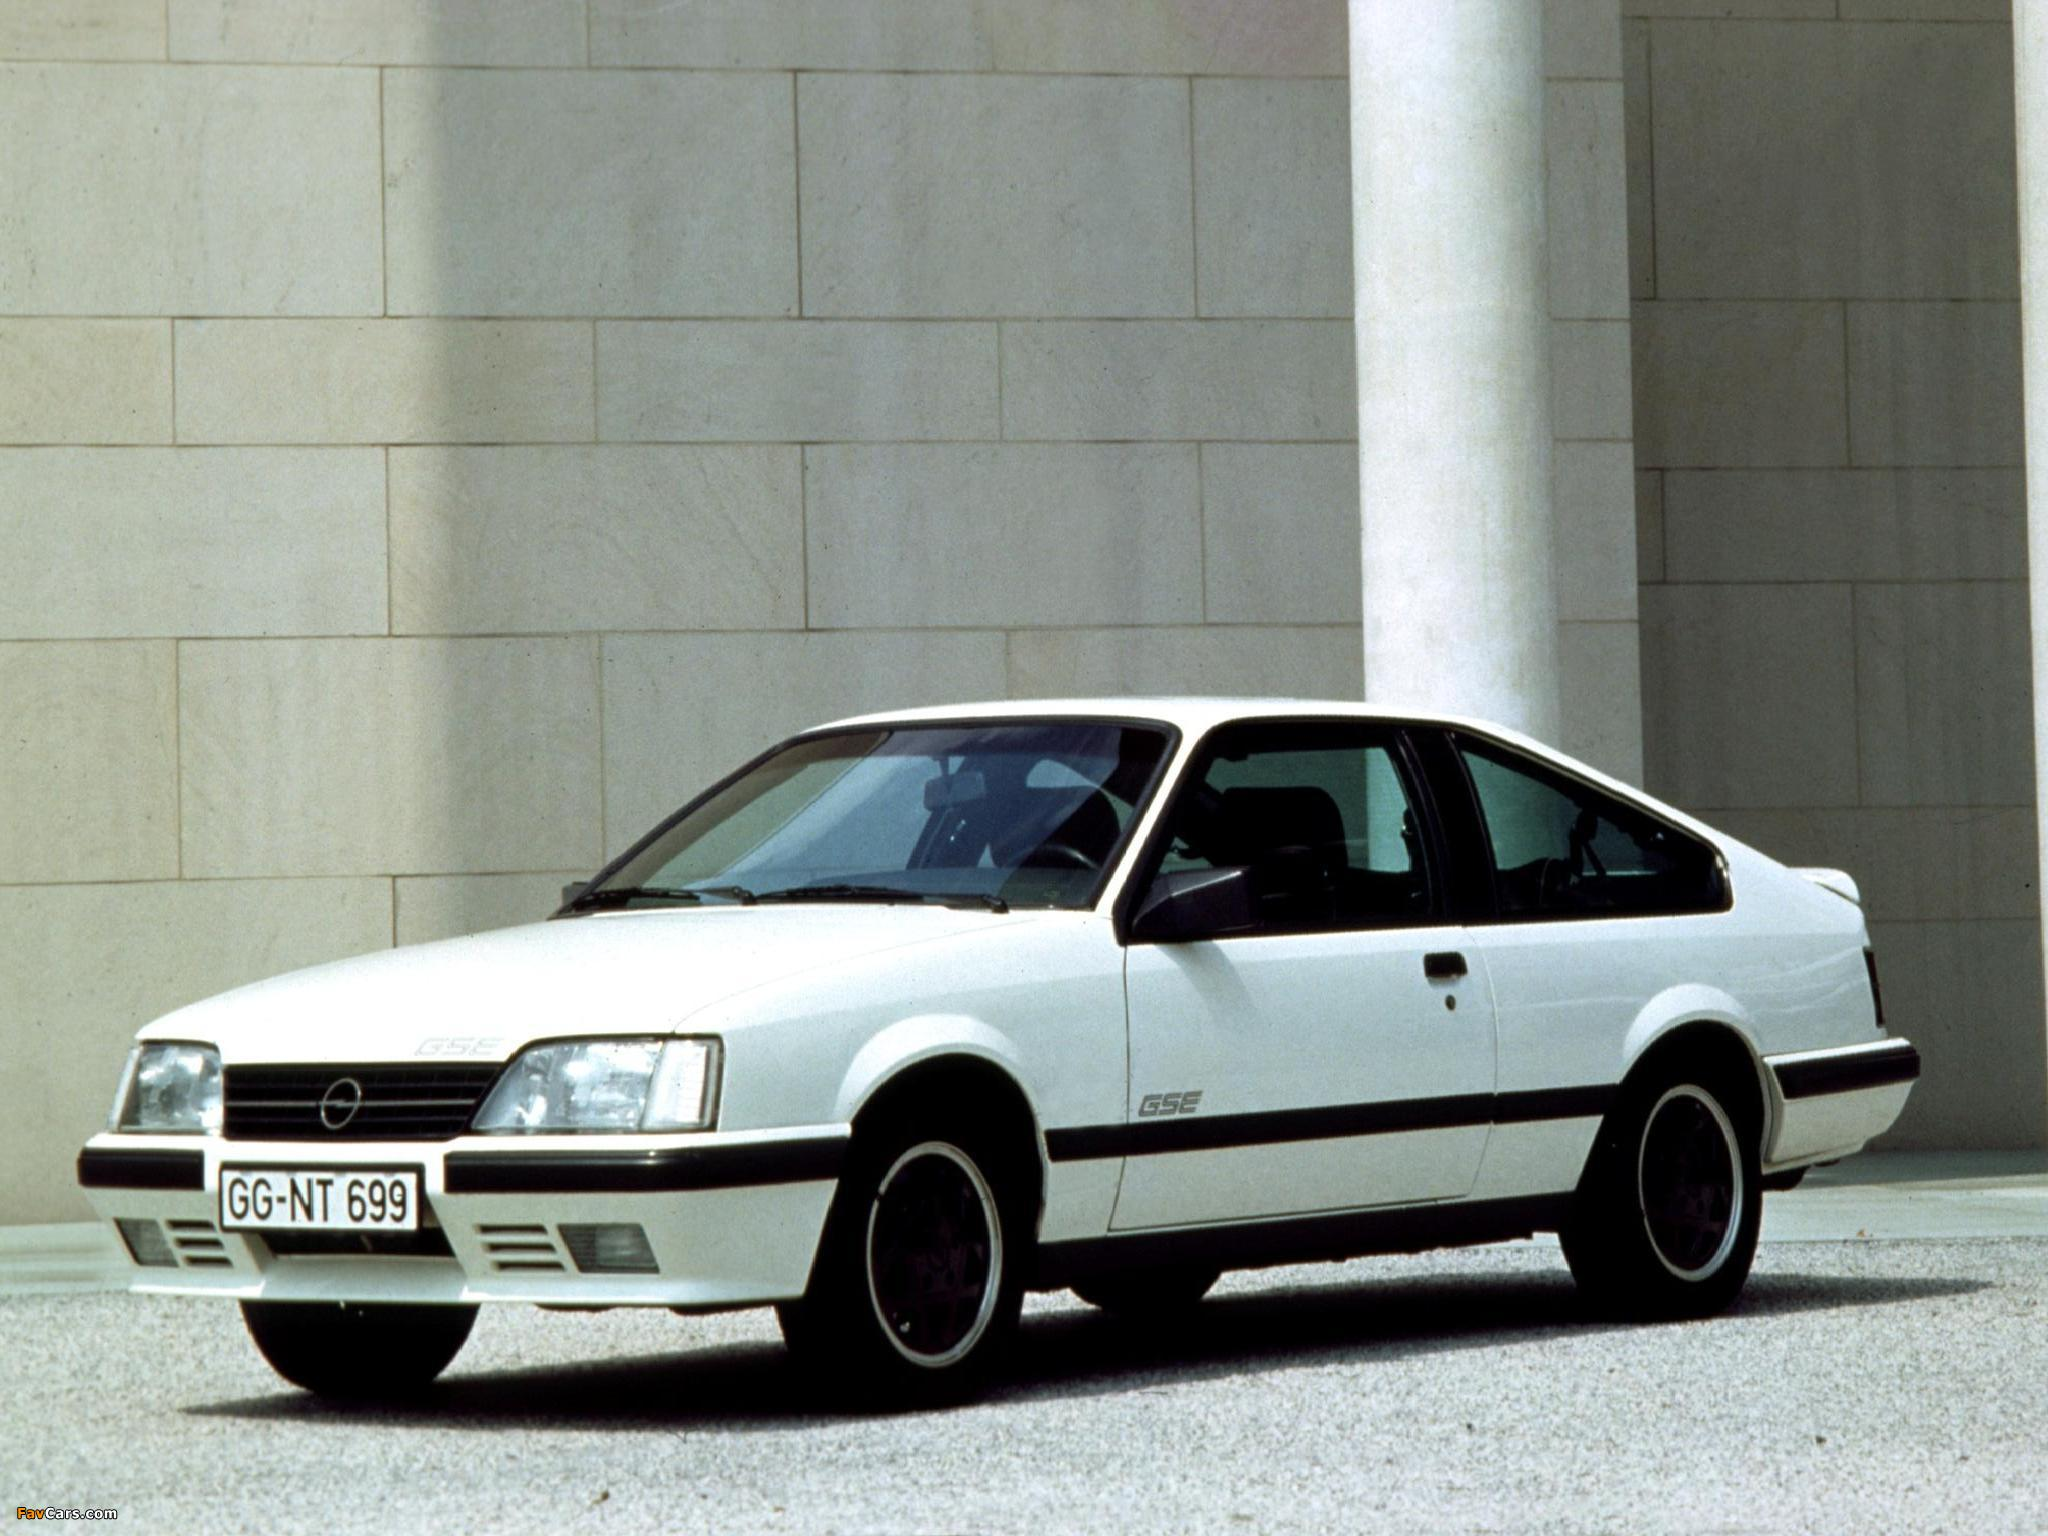 pictures of opel monza gse a2 1983 86 2048x1536. Black Bedroom Furniture Sets. Home Design Ideas